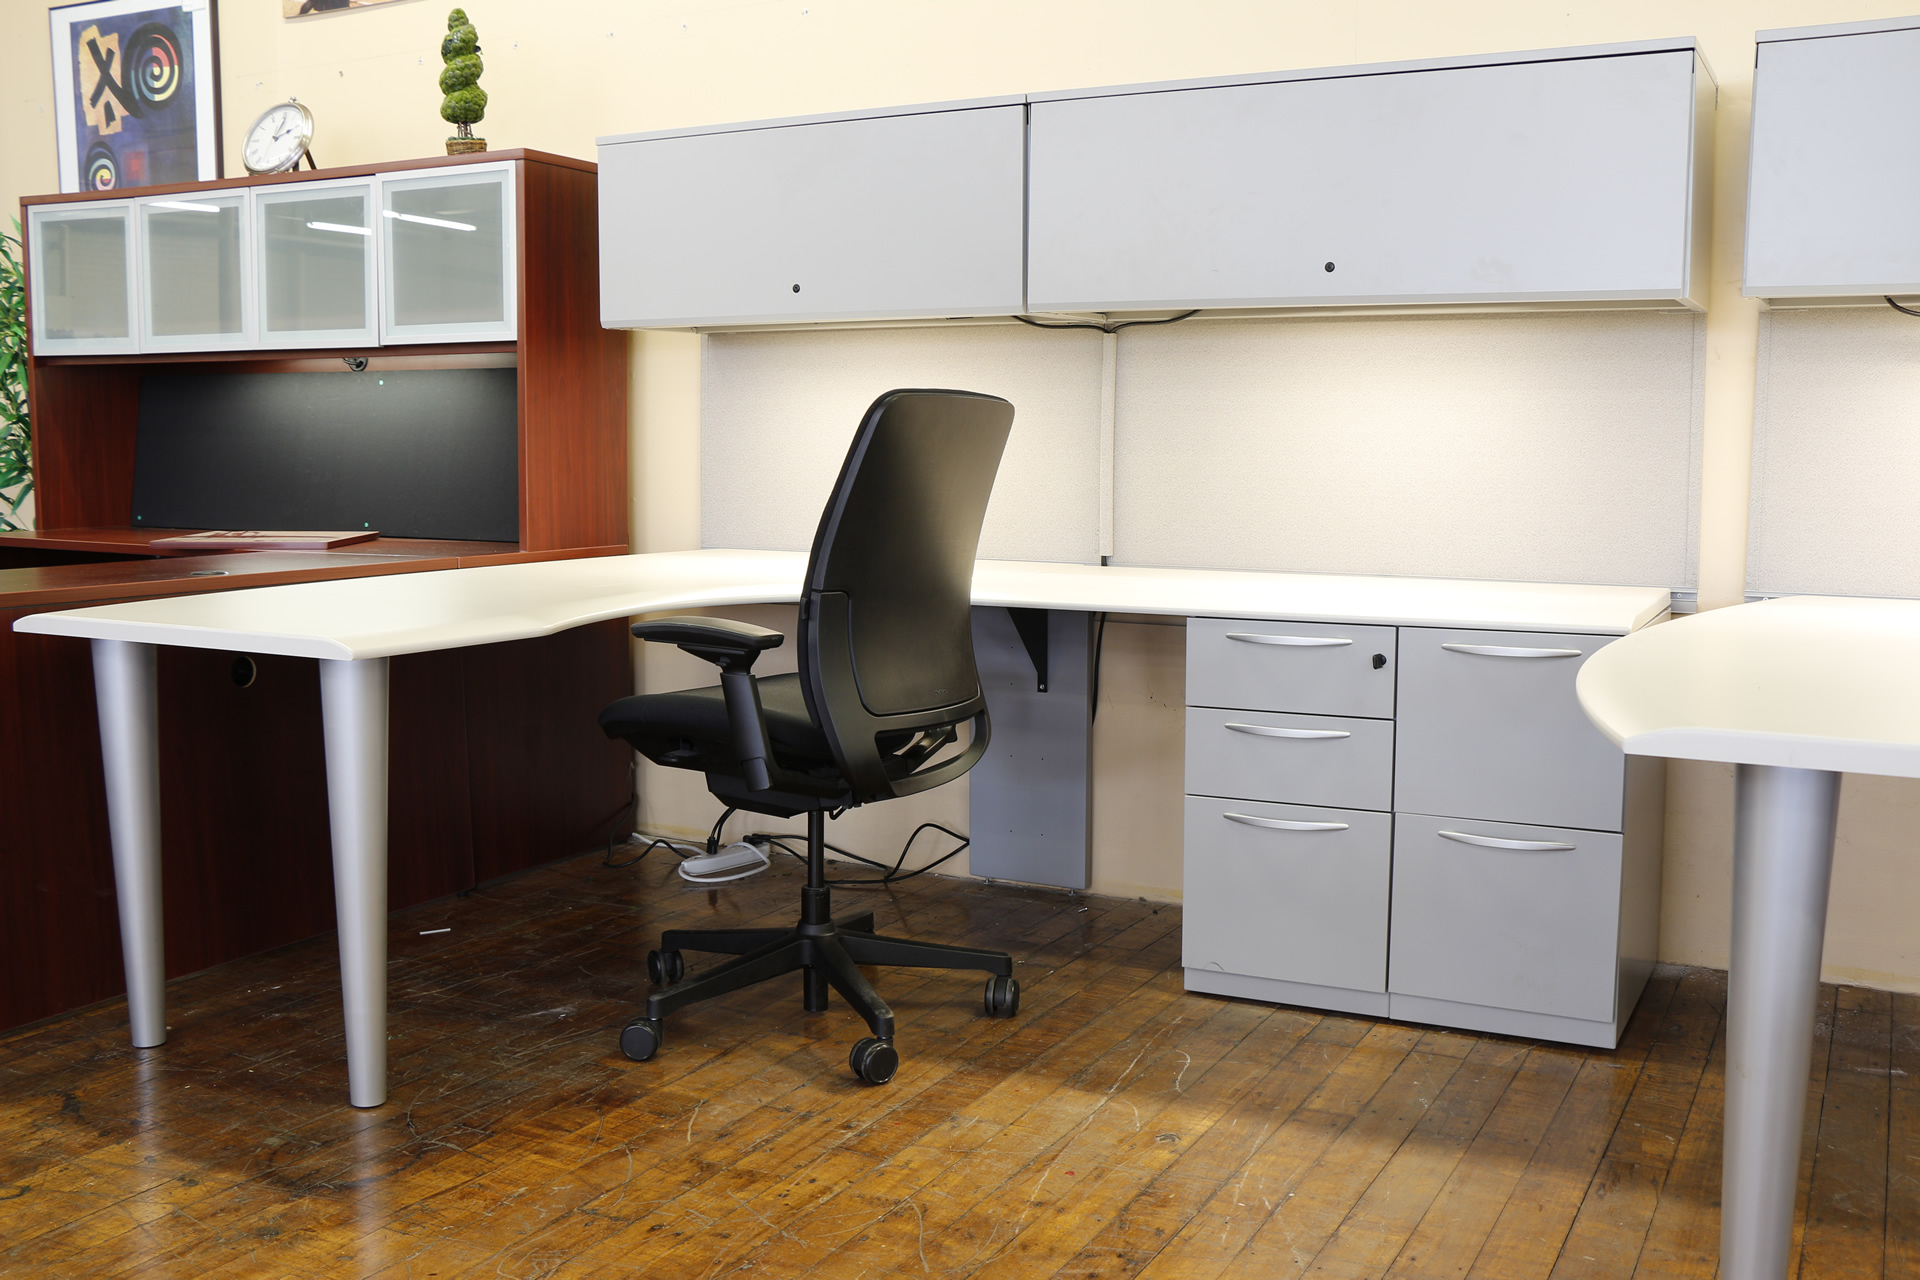 Kimball harpers 6 x 8 modular l desks peartree office furniture - Kimball office desk ...